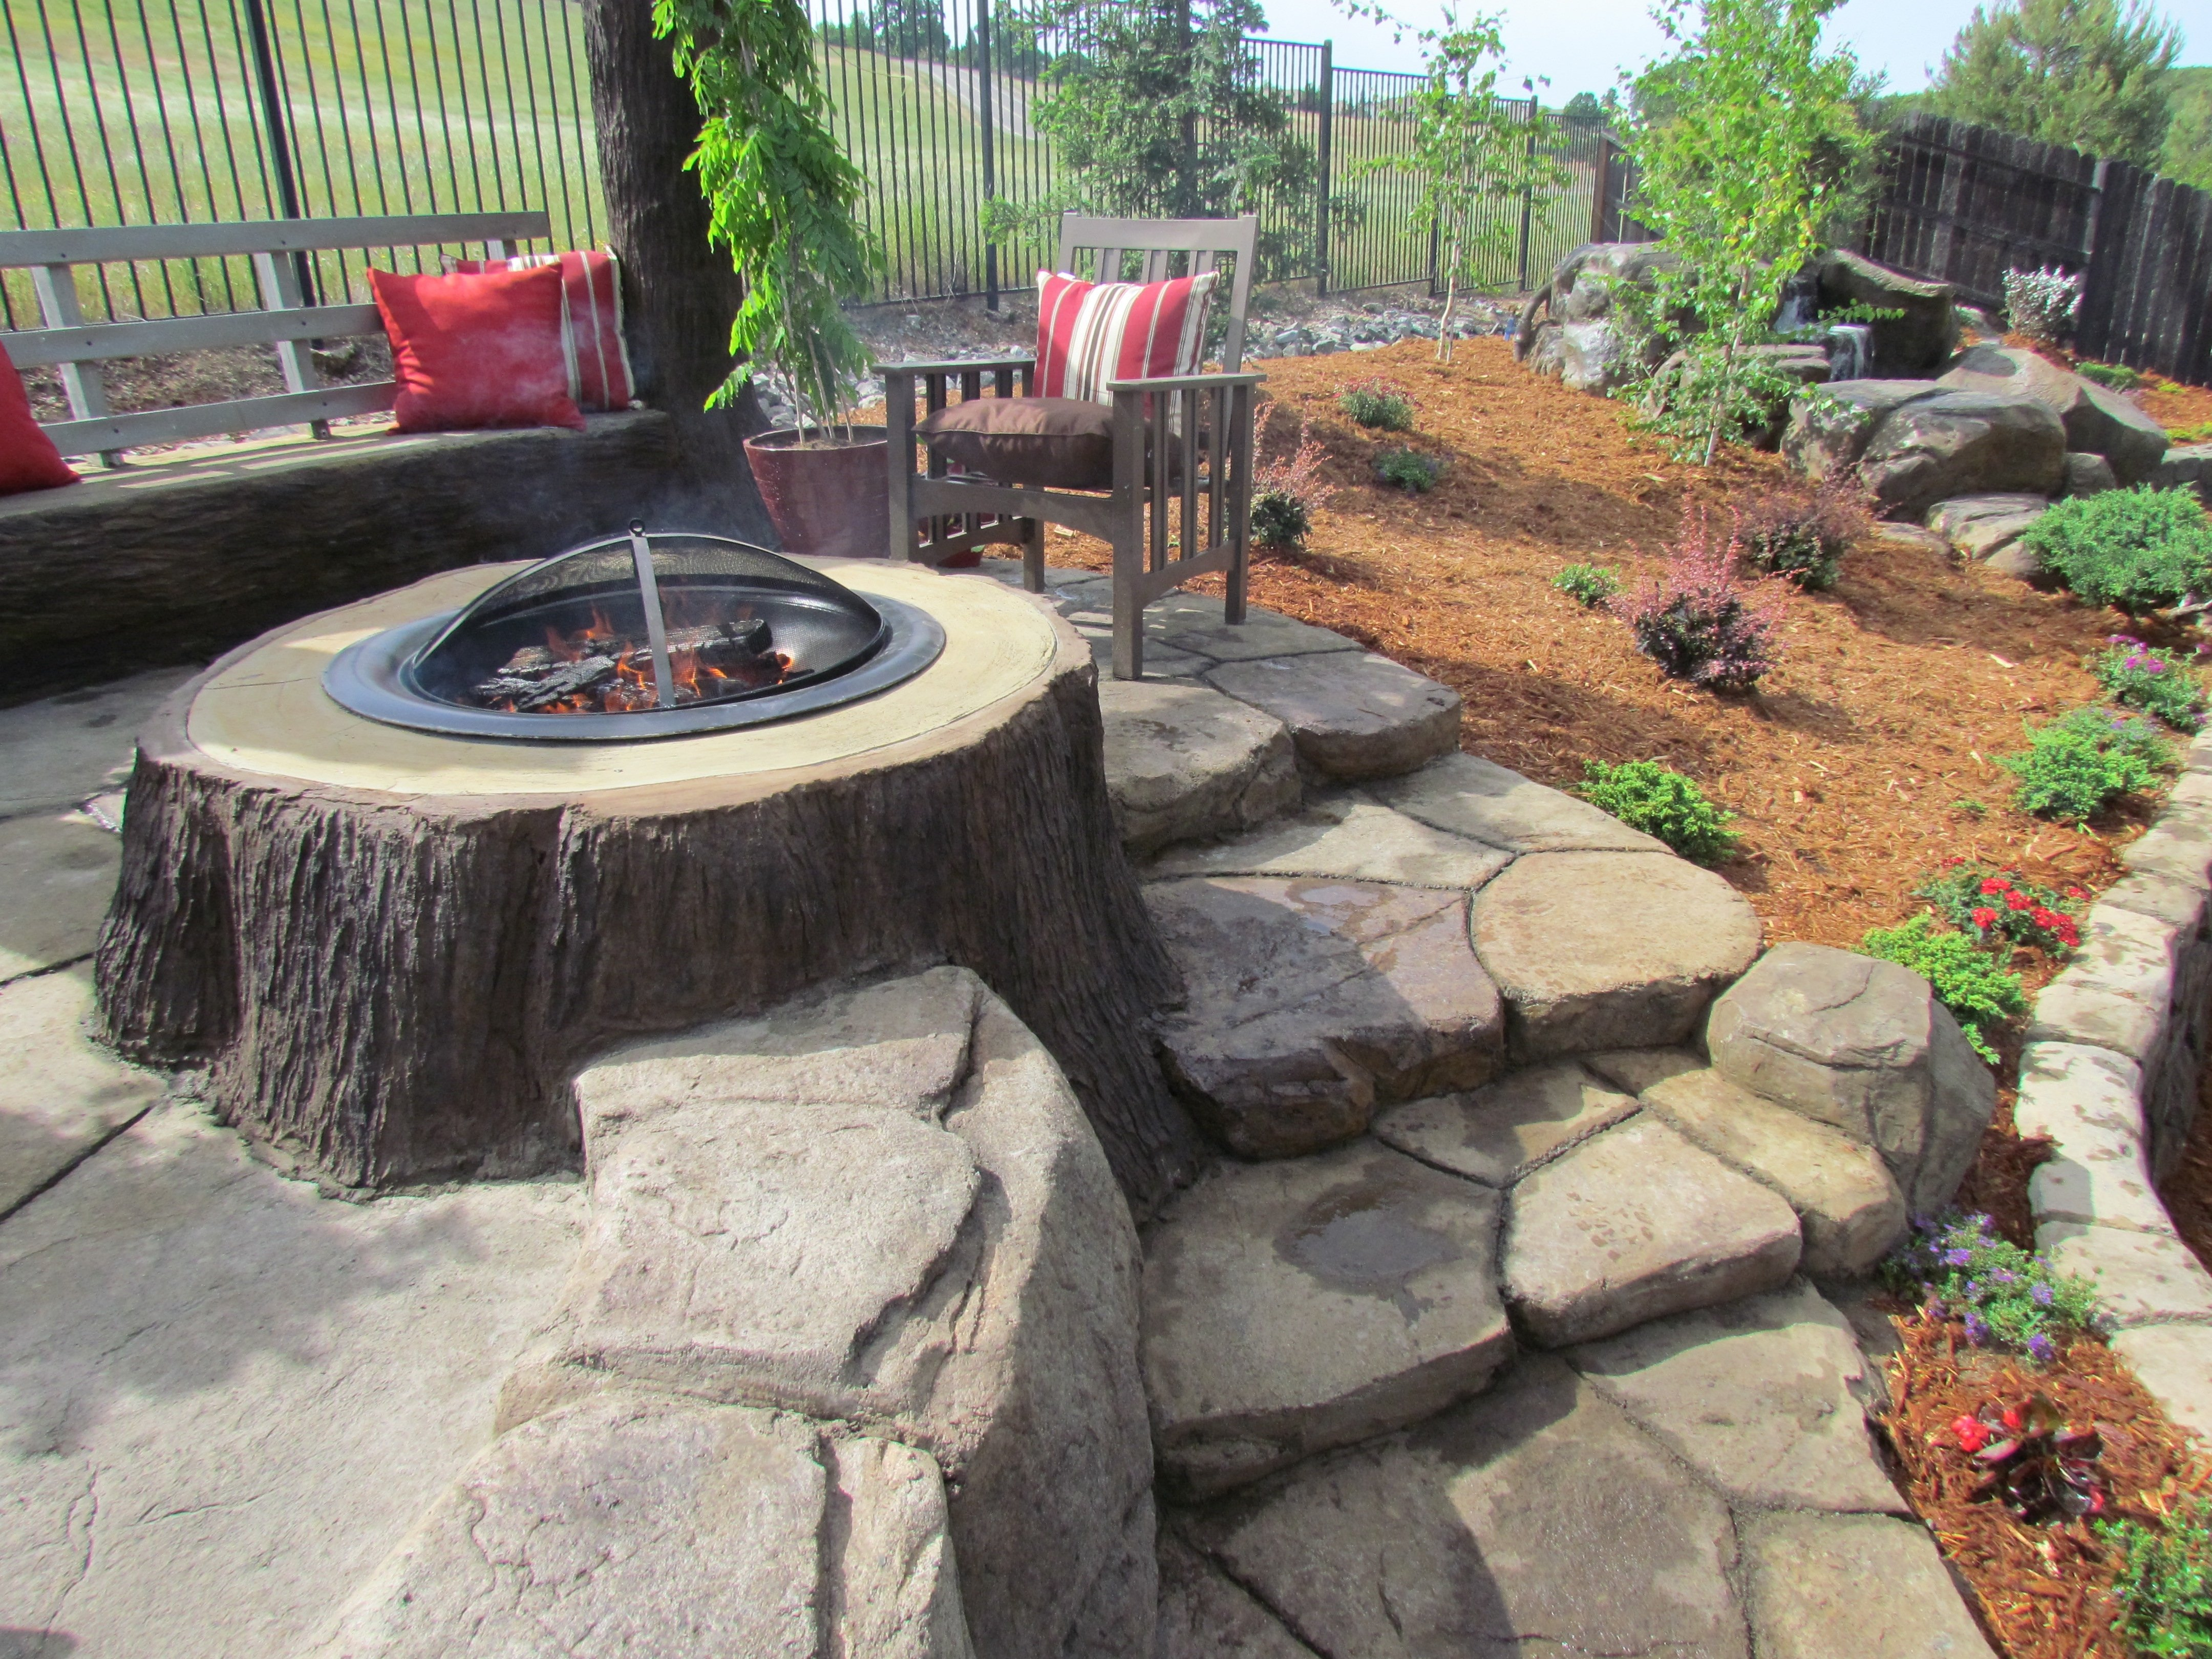 10 Fashionable Homemade Outdoor Fire Pit Ideas lovely concrete fire pit ideas awesome concrete fire pit ideas like 2020